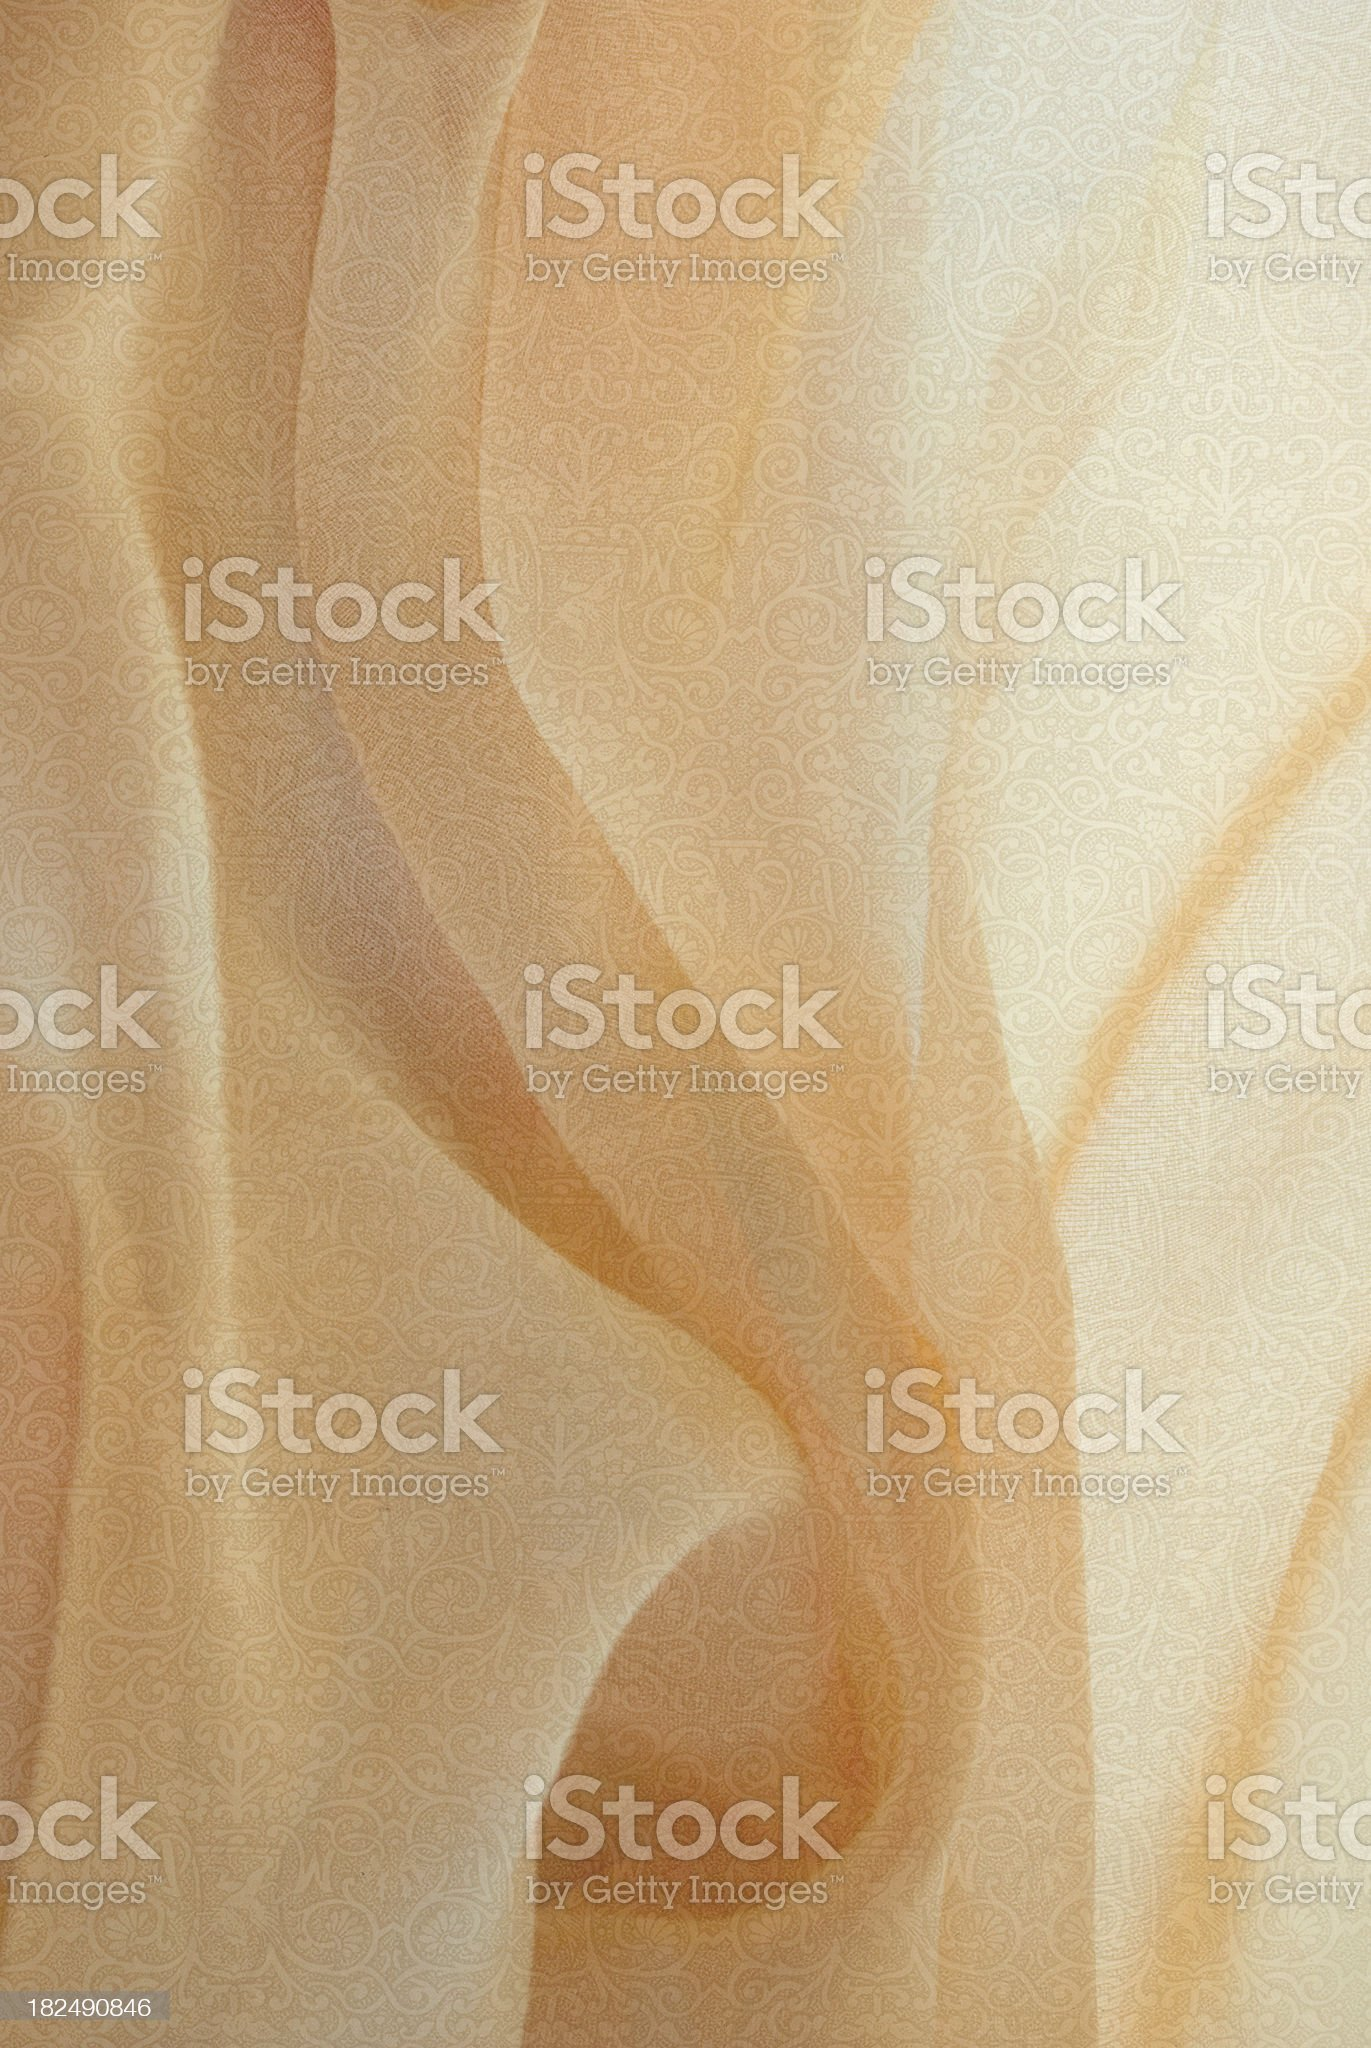 Soft Focus Fabric Abstract Background royalty-free stock photo